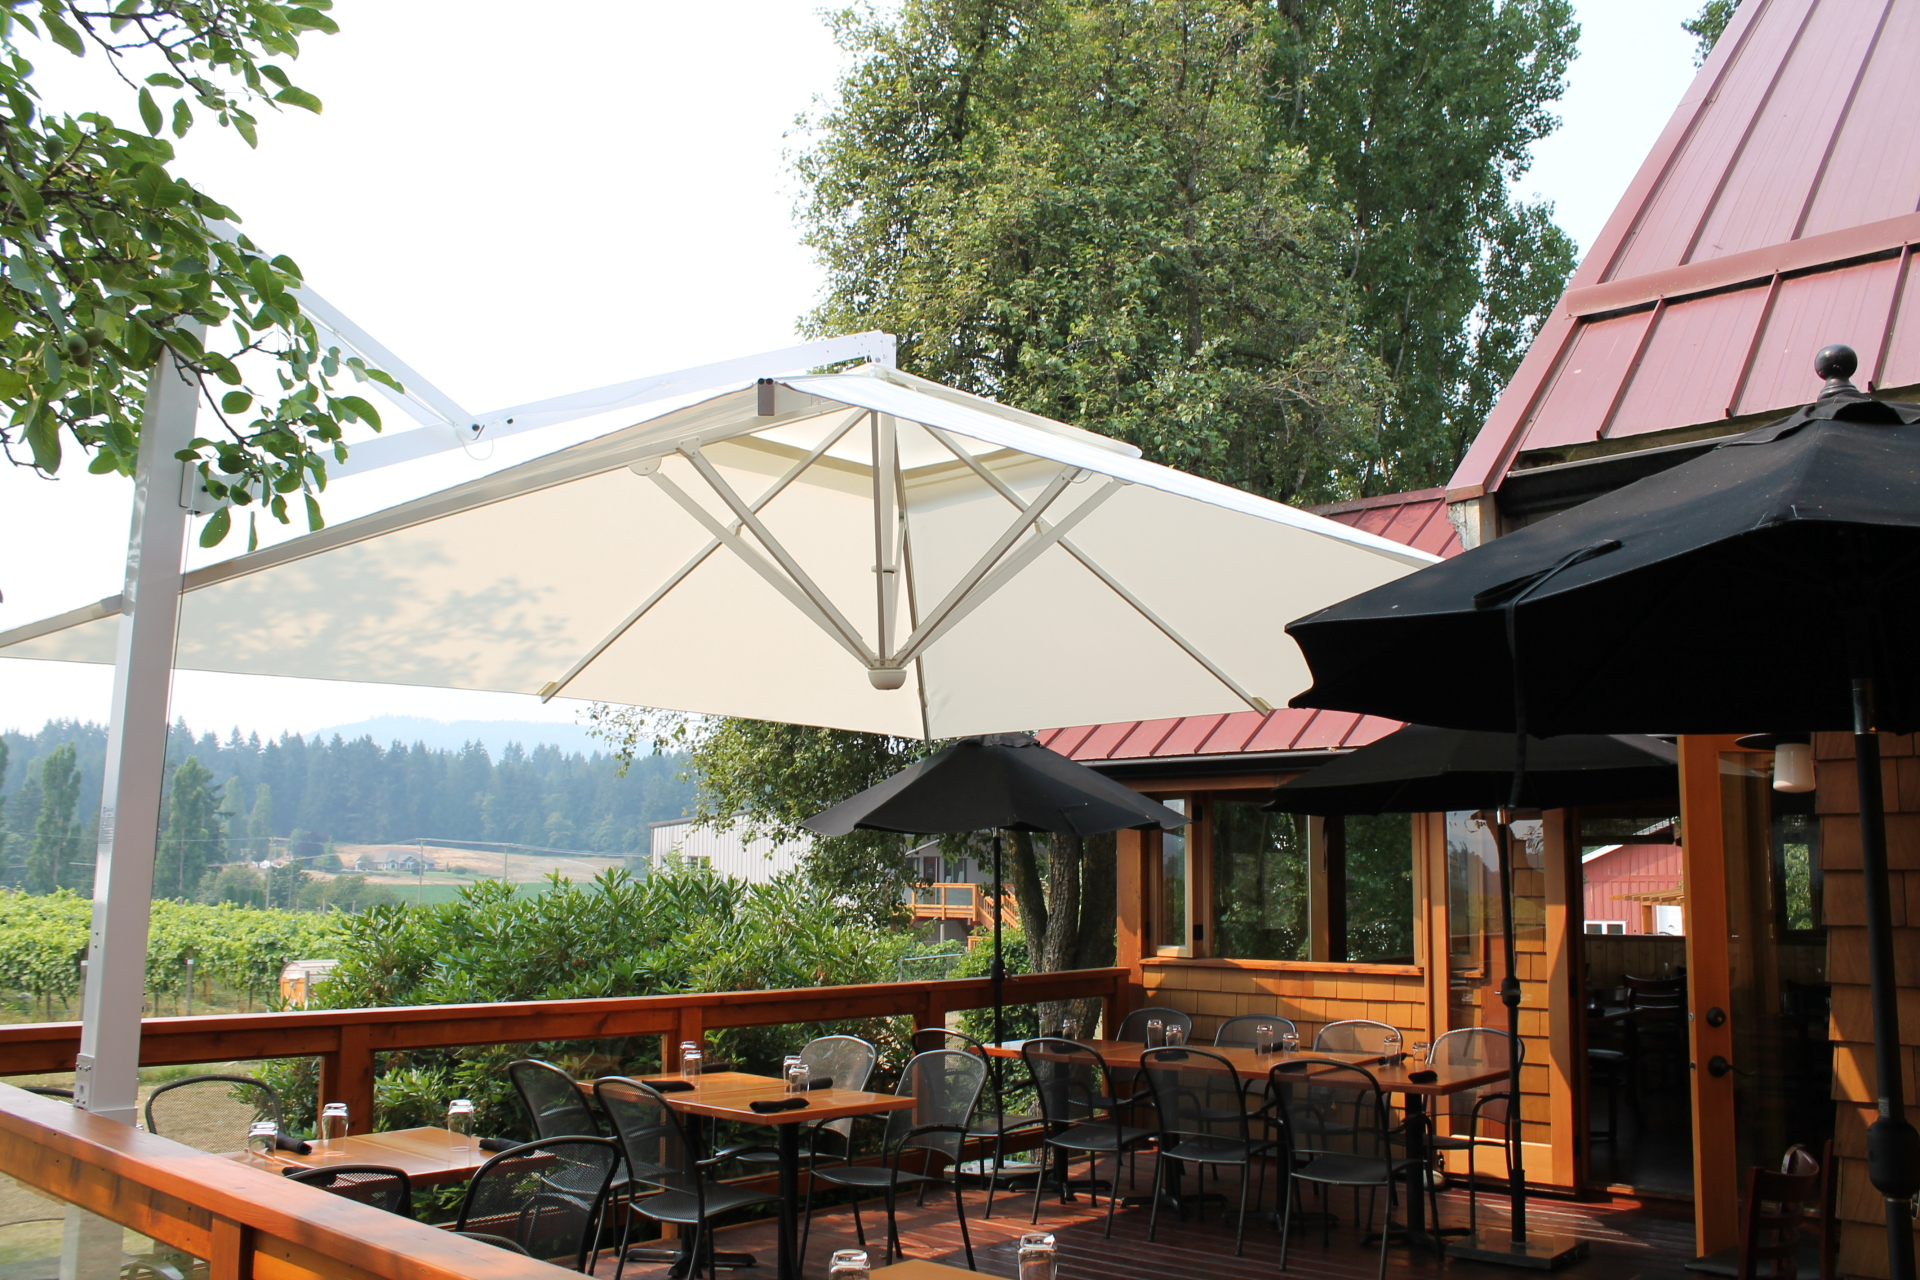 Atria Designs Inc's Latest Projects: Patio Umbrellas for your Summer Shade